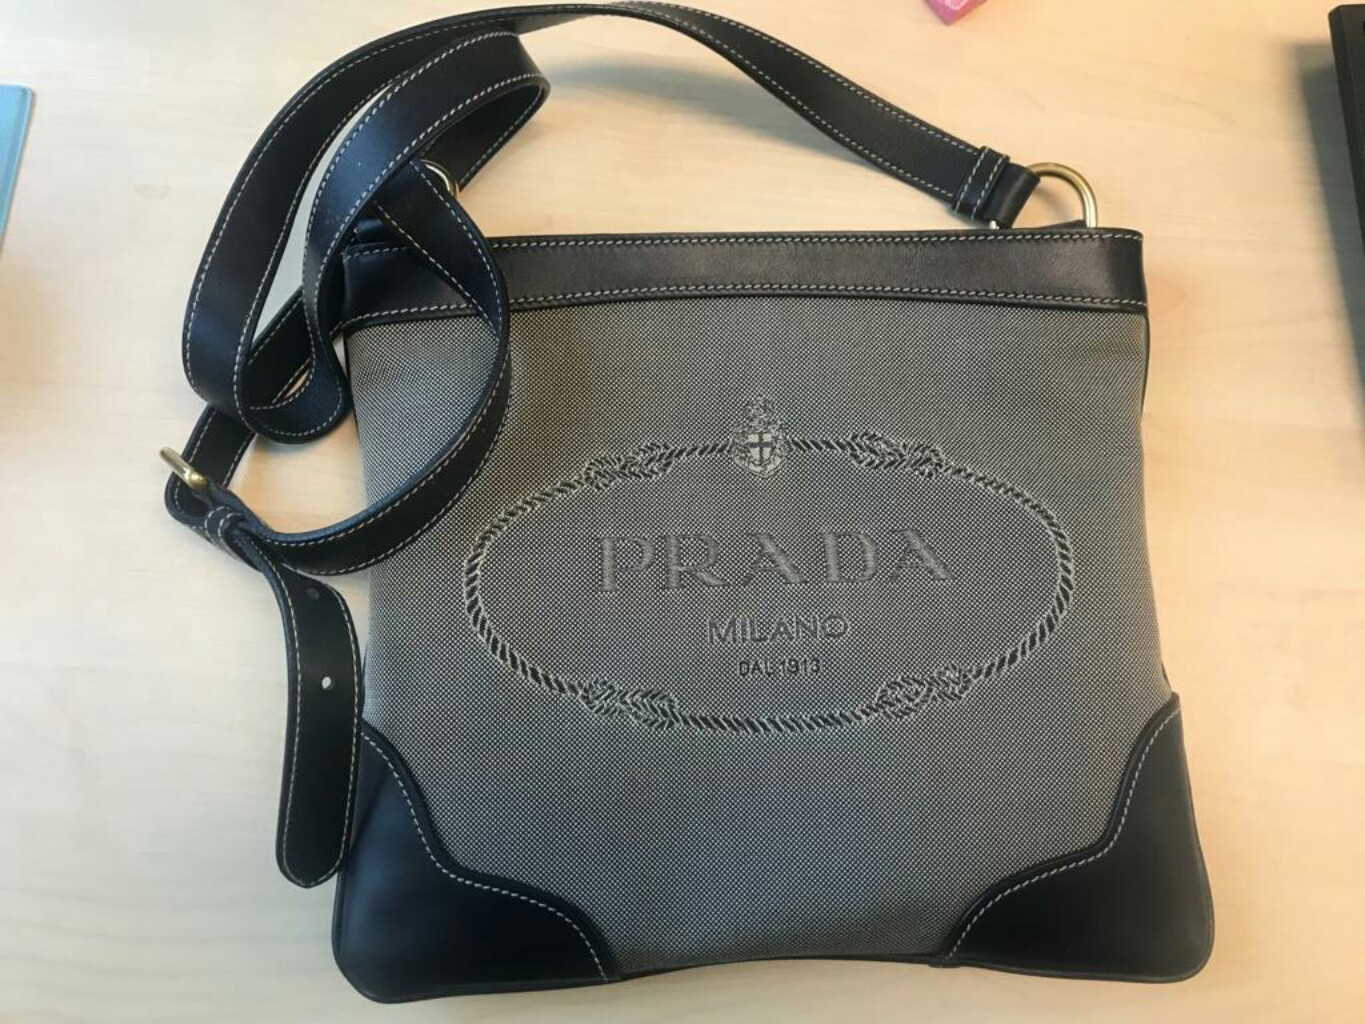 923a2be9e0f1 PRADA SLING BAG, Luxury, Bags & Wallets, Sling Bags on Carousell